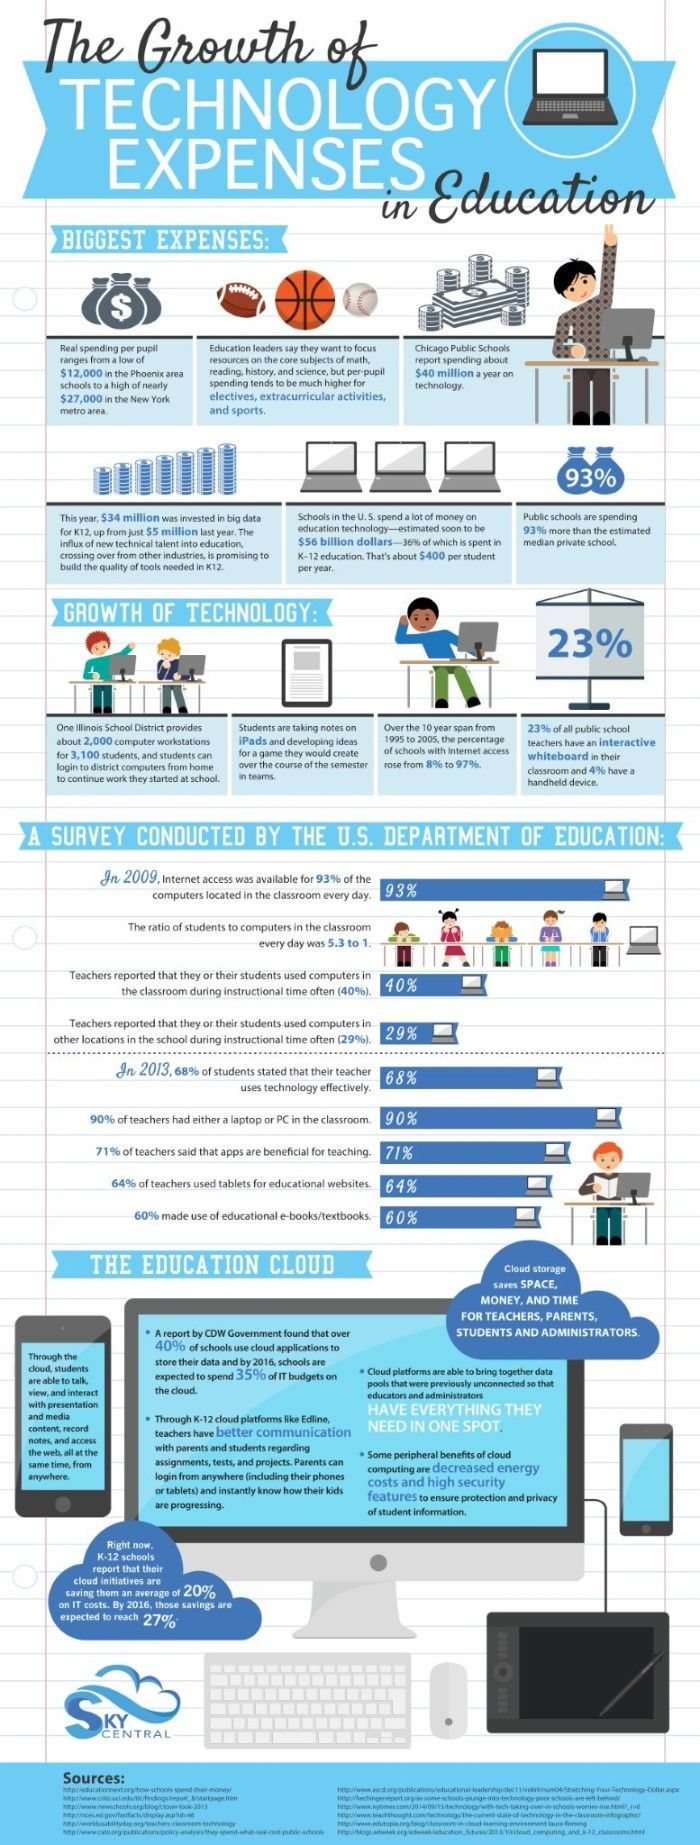 The Growth of Technology Expenses in Education #infographic